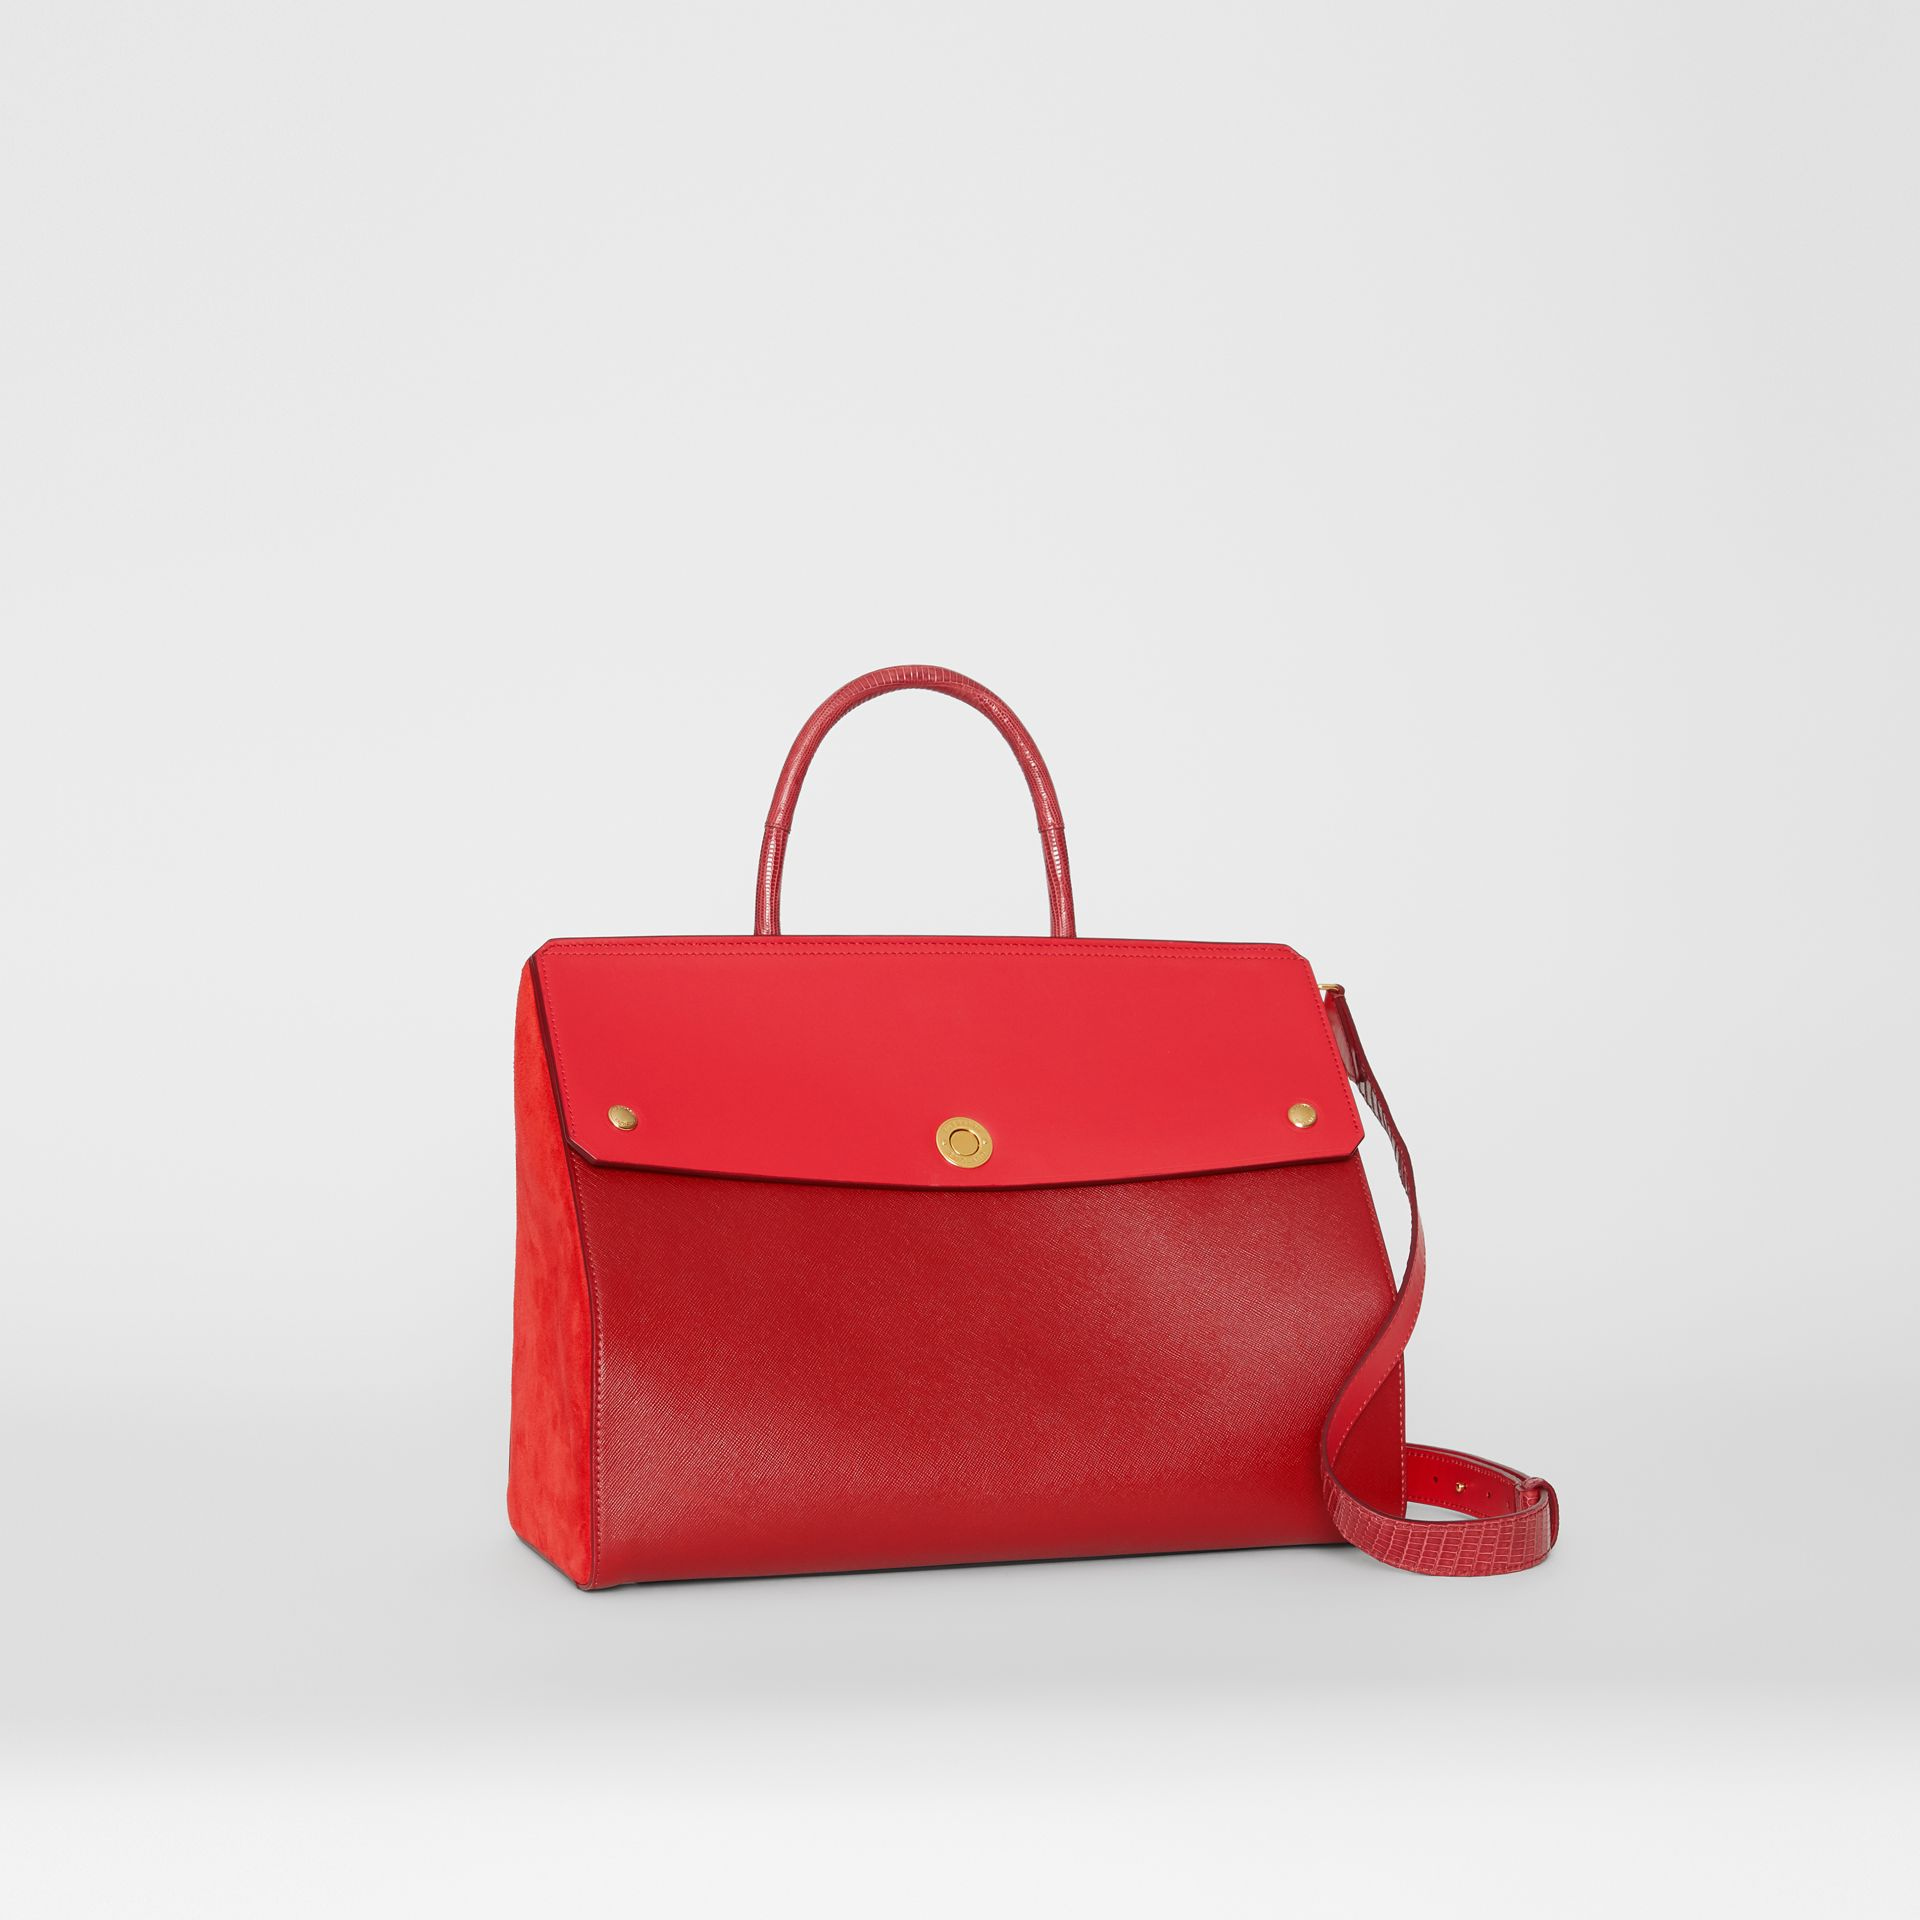 Small Leather and Suede Elizabeth Bag in Bright Military Red - Women | Burberry - gallery image 4